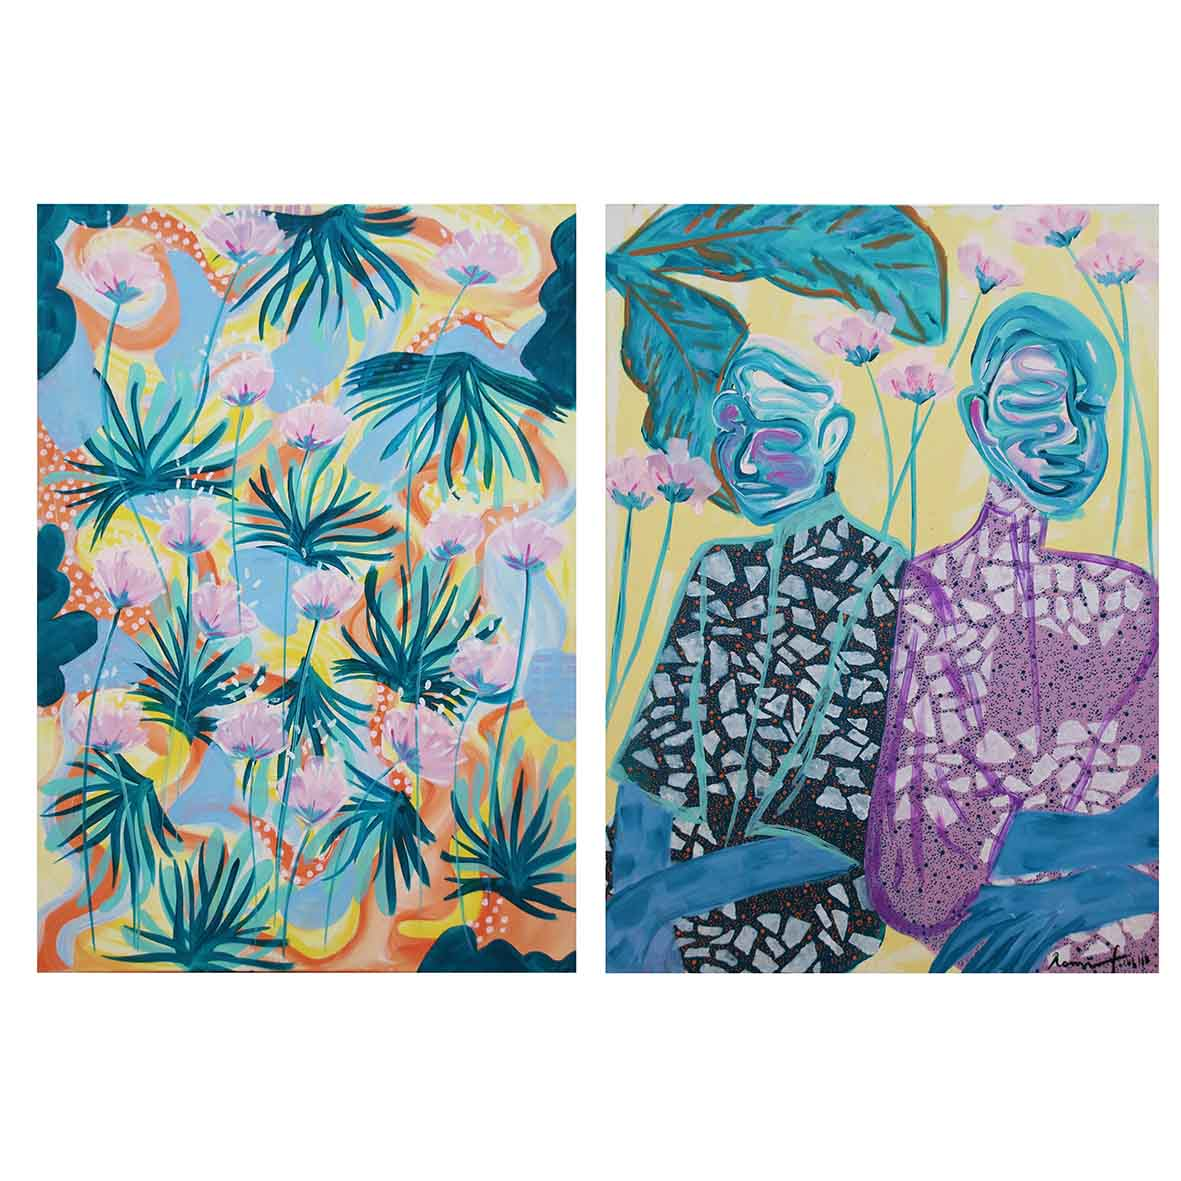 Romi Flowers Everything is Fine 2018 mixed media on canvas 118 x 84 cm (diptych)